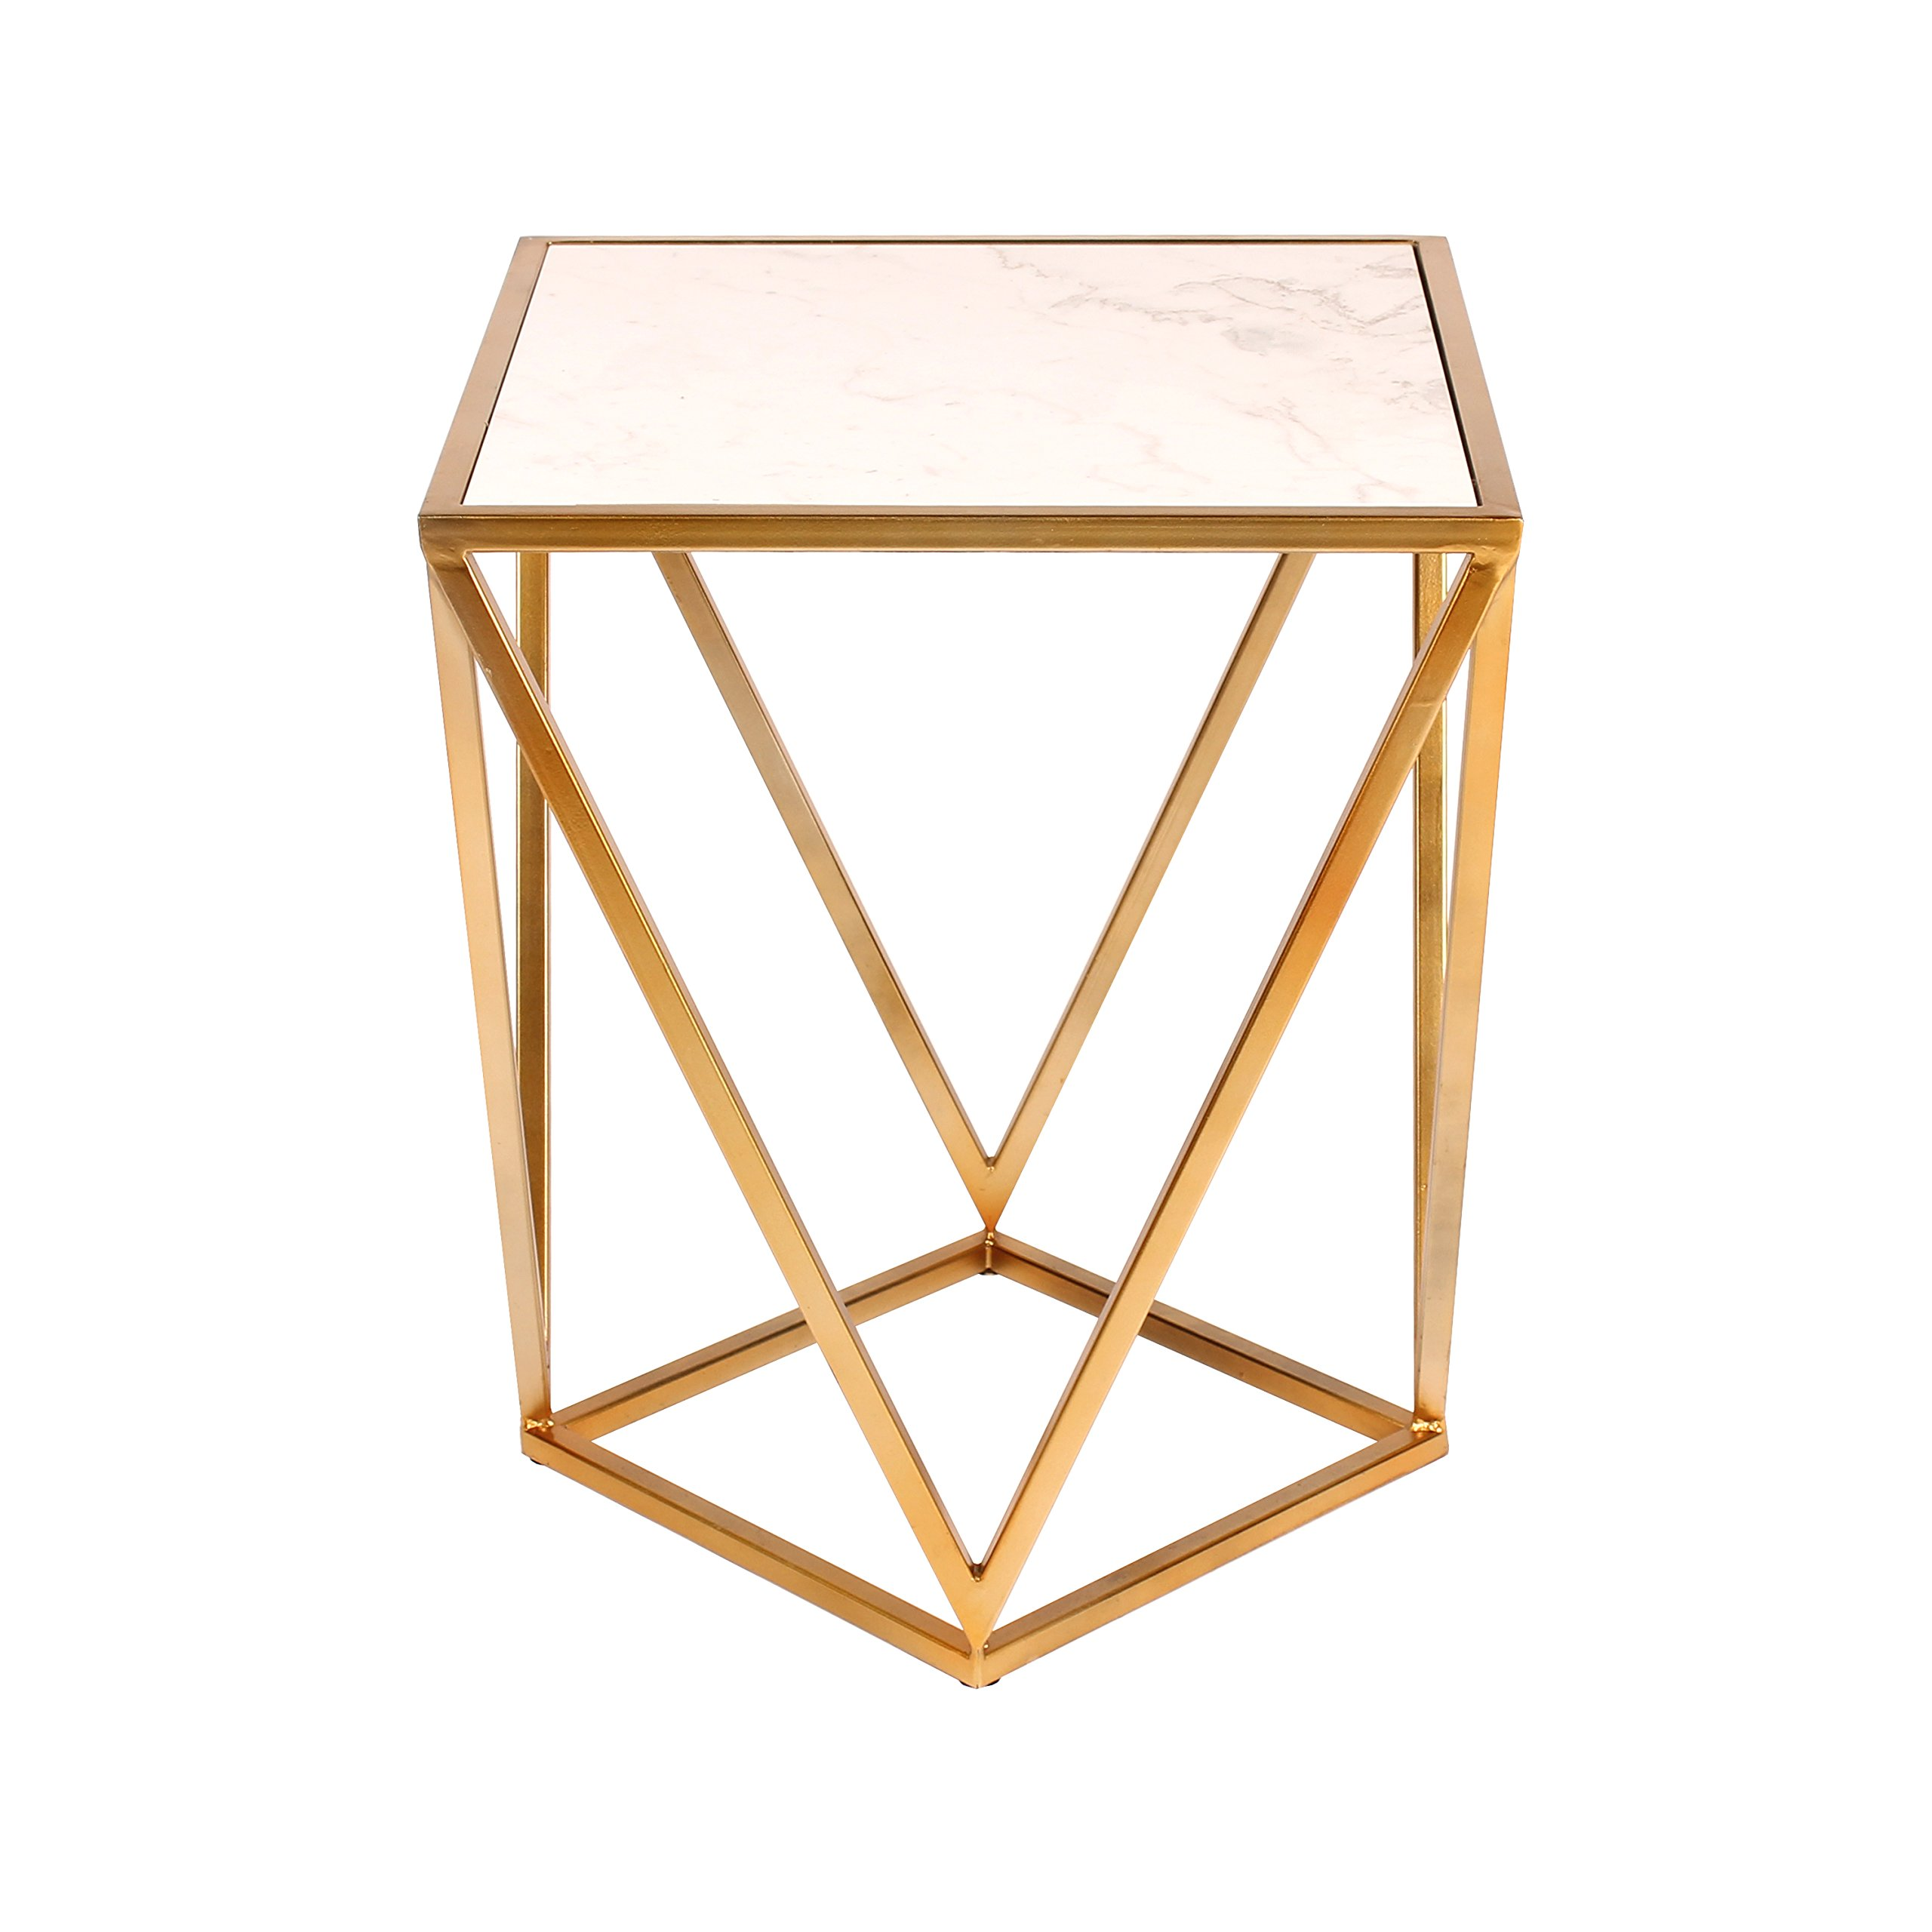 kate and laurel maia metal side accent table with marble top gold azkzeckl decorative square end angled geometric base modern high furniture venetian mirrored jcpenney rugs